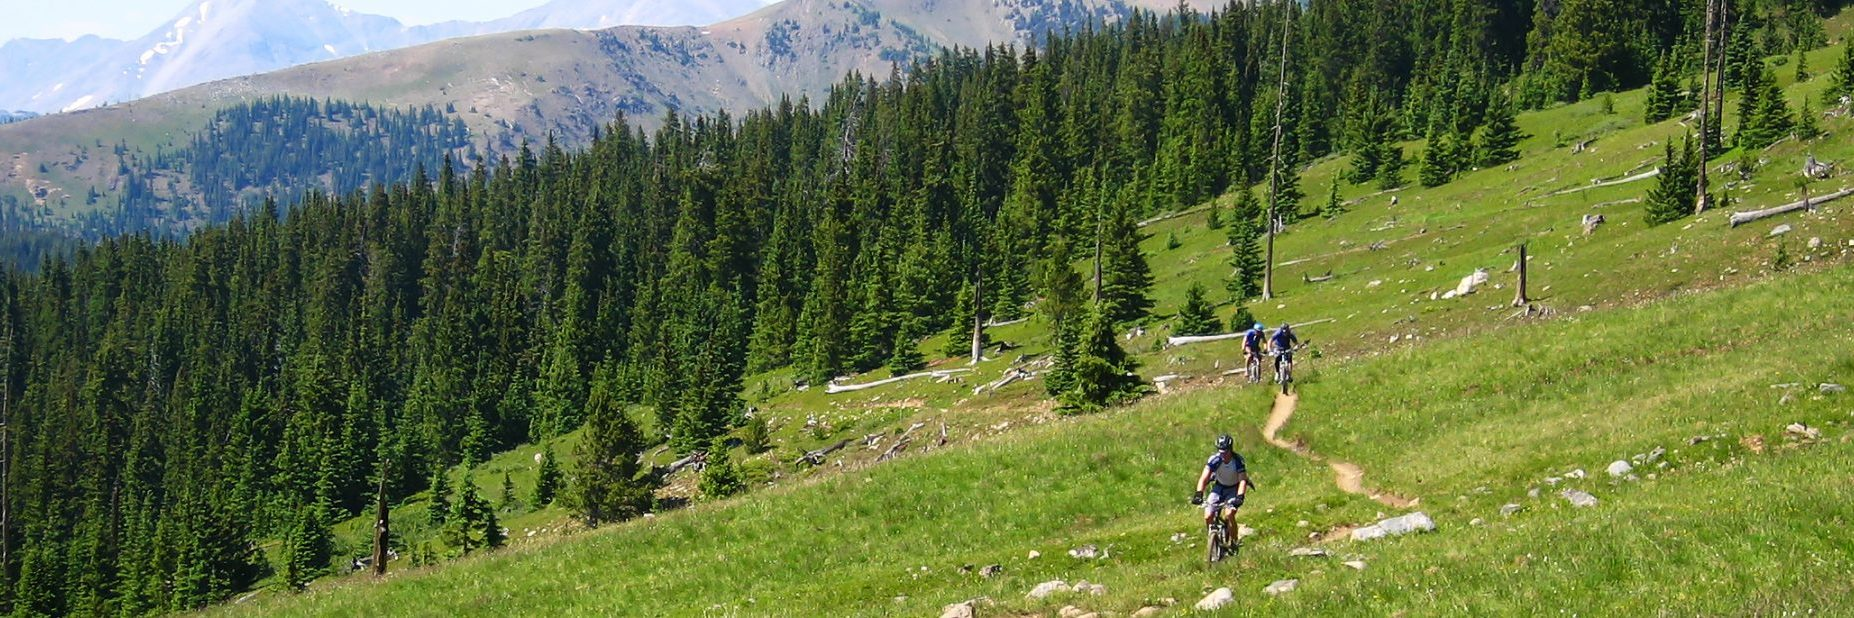 Crested Butte has challenging intermediate singletrack